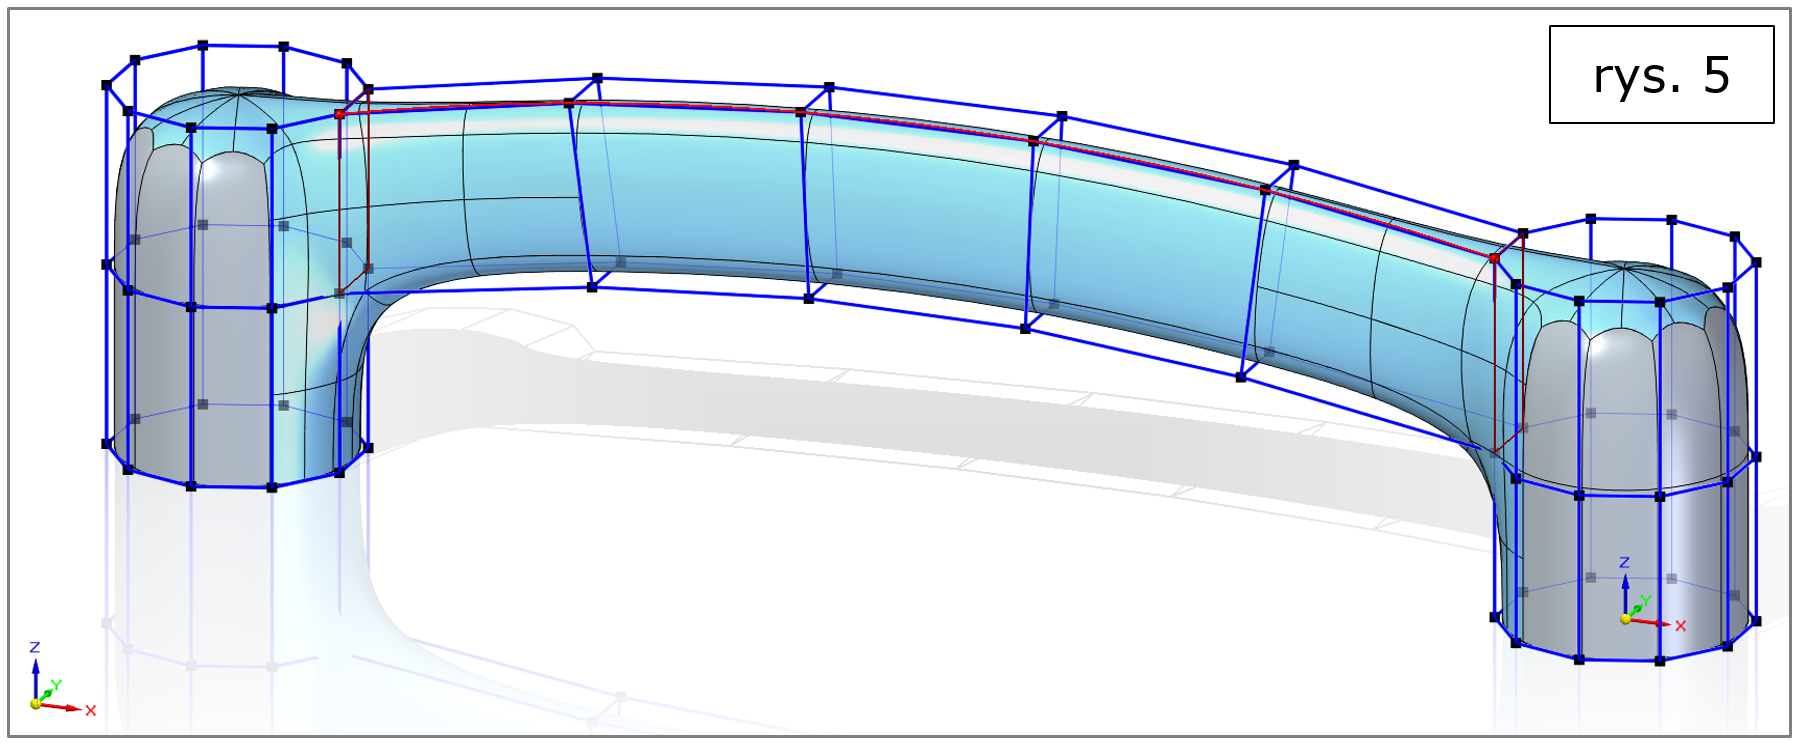 subdivision modeling, most wzdłuż krzywej-Solid Edge 2022